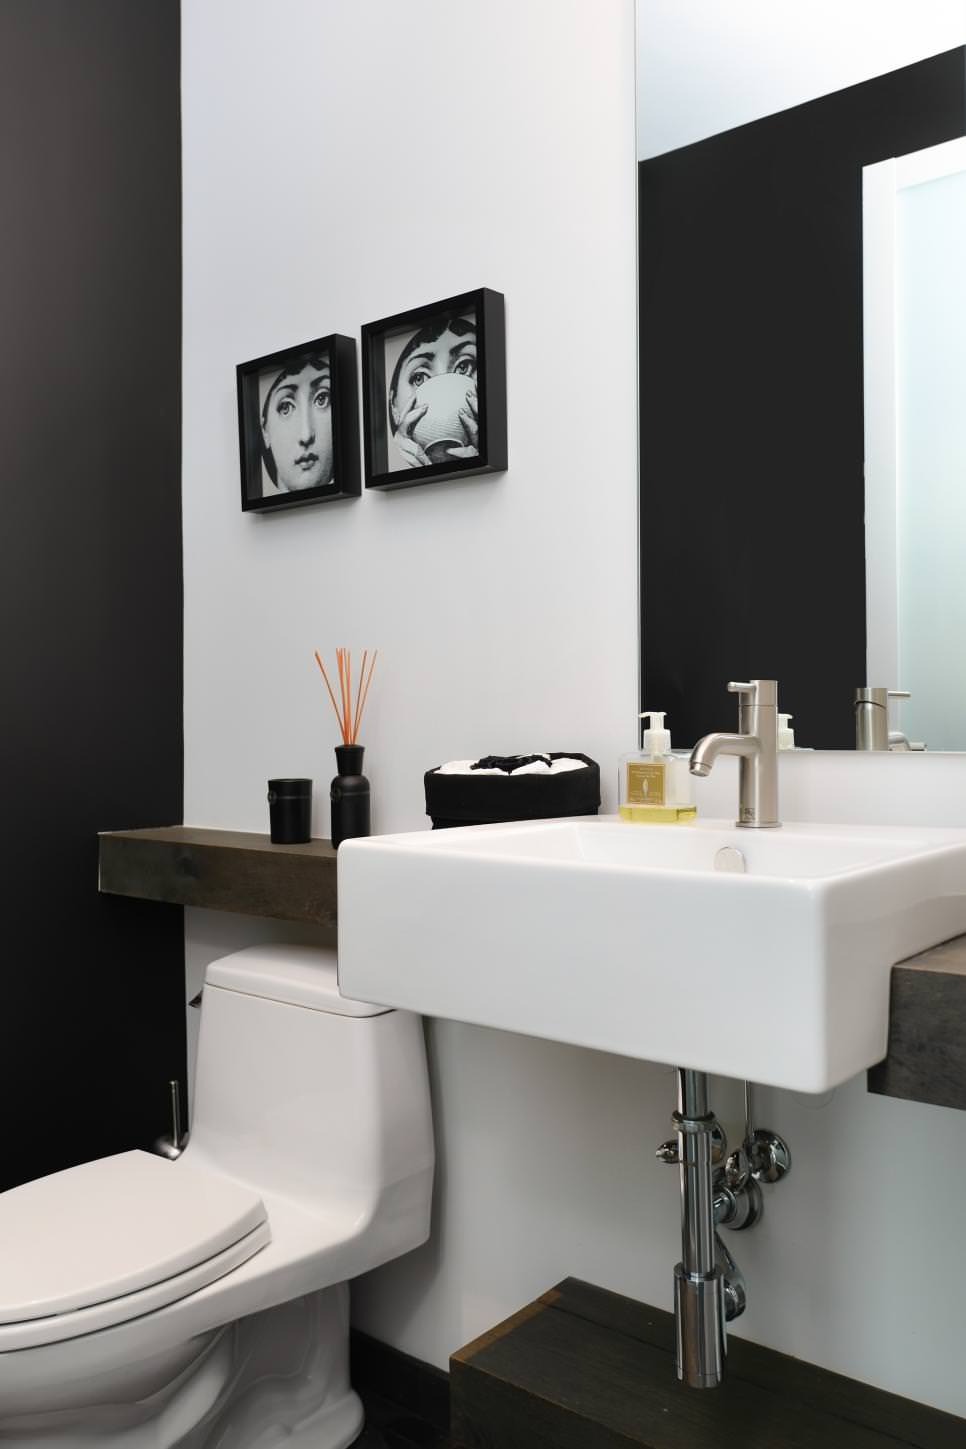 Balck Accent Bathoom Wall Mural Designs